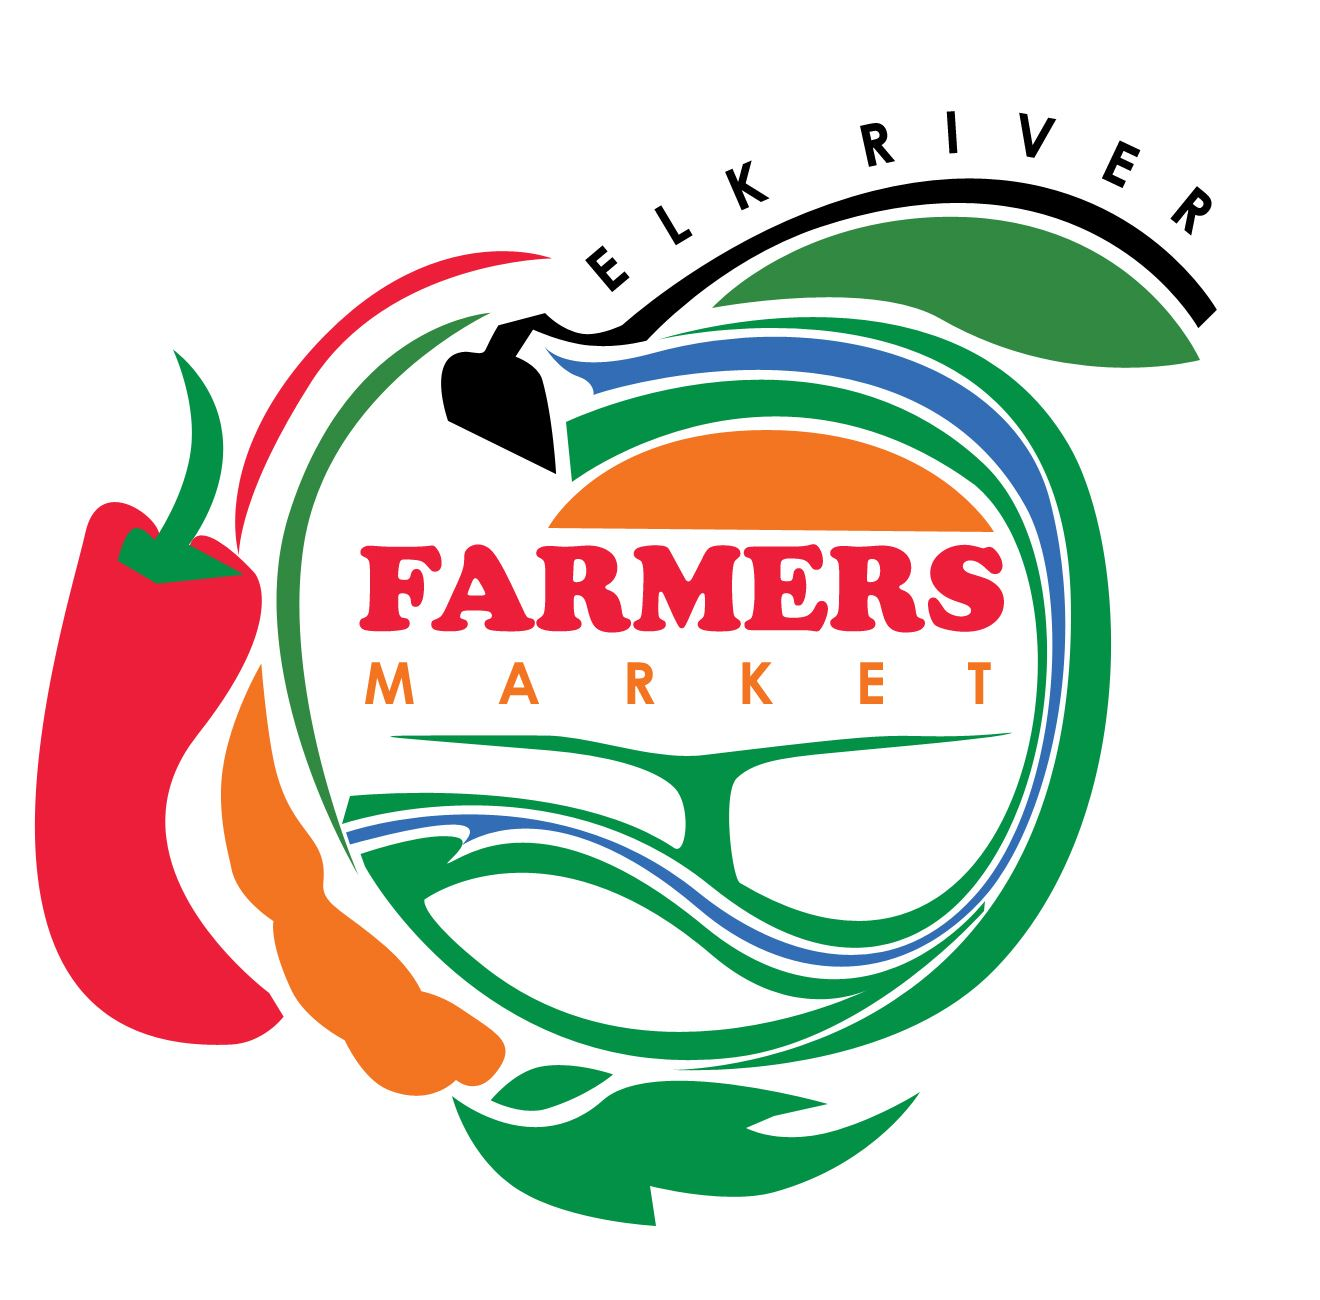 Farmers Market | Elk River, MN - Official Website